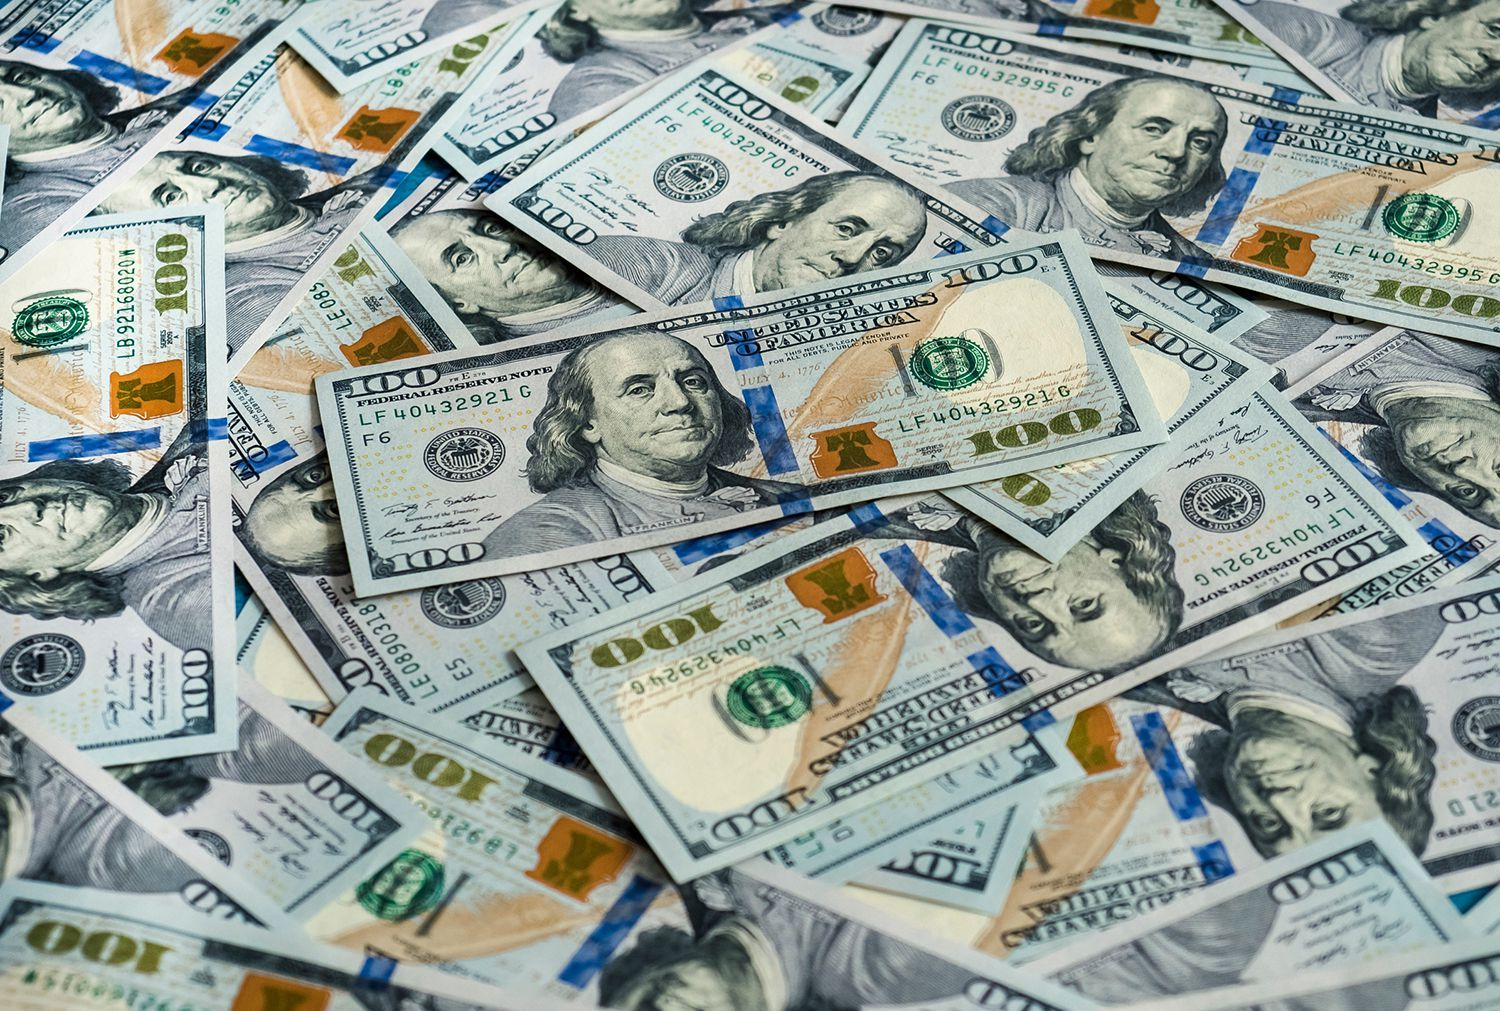 100 Bill With Benjamin Franklin Accessible Text On This Famous Man 100 Dollar Bill Dollar Bill Dollar